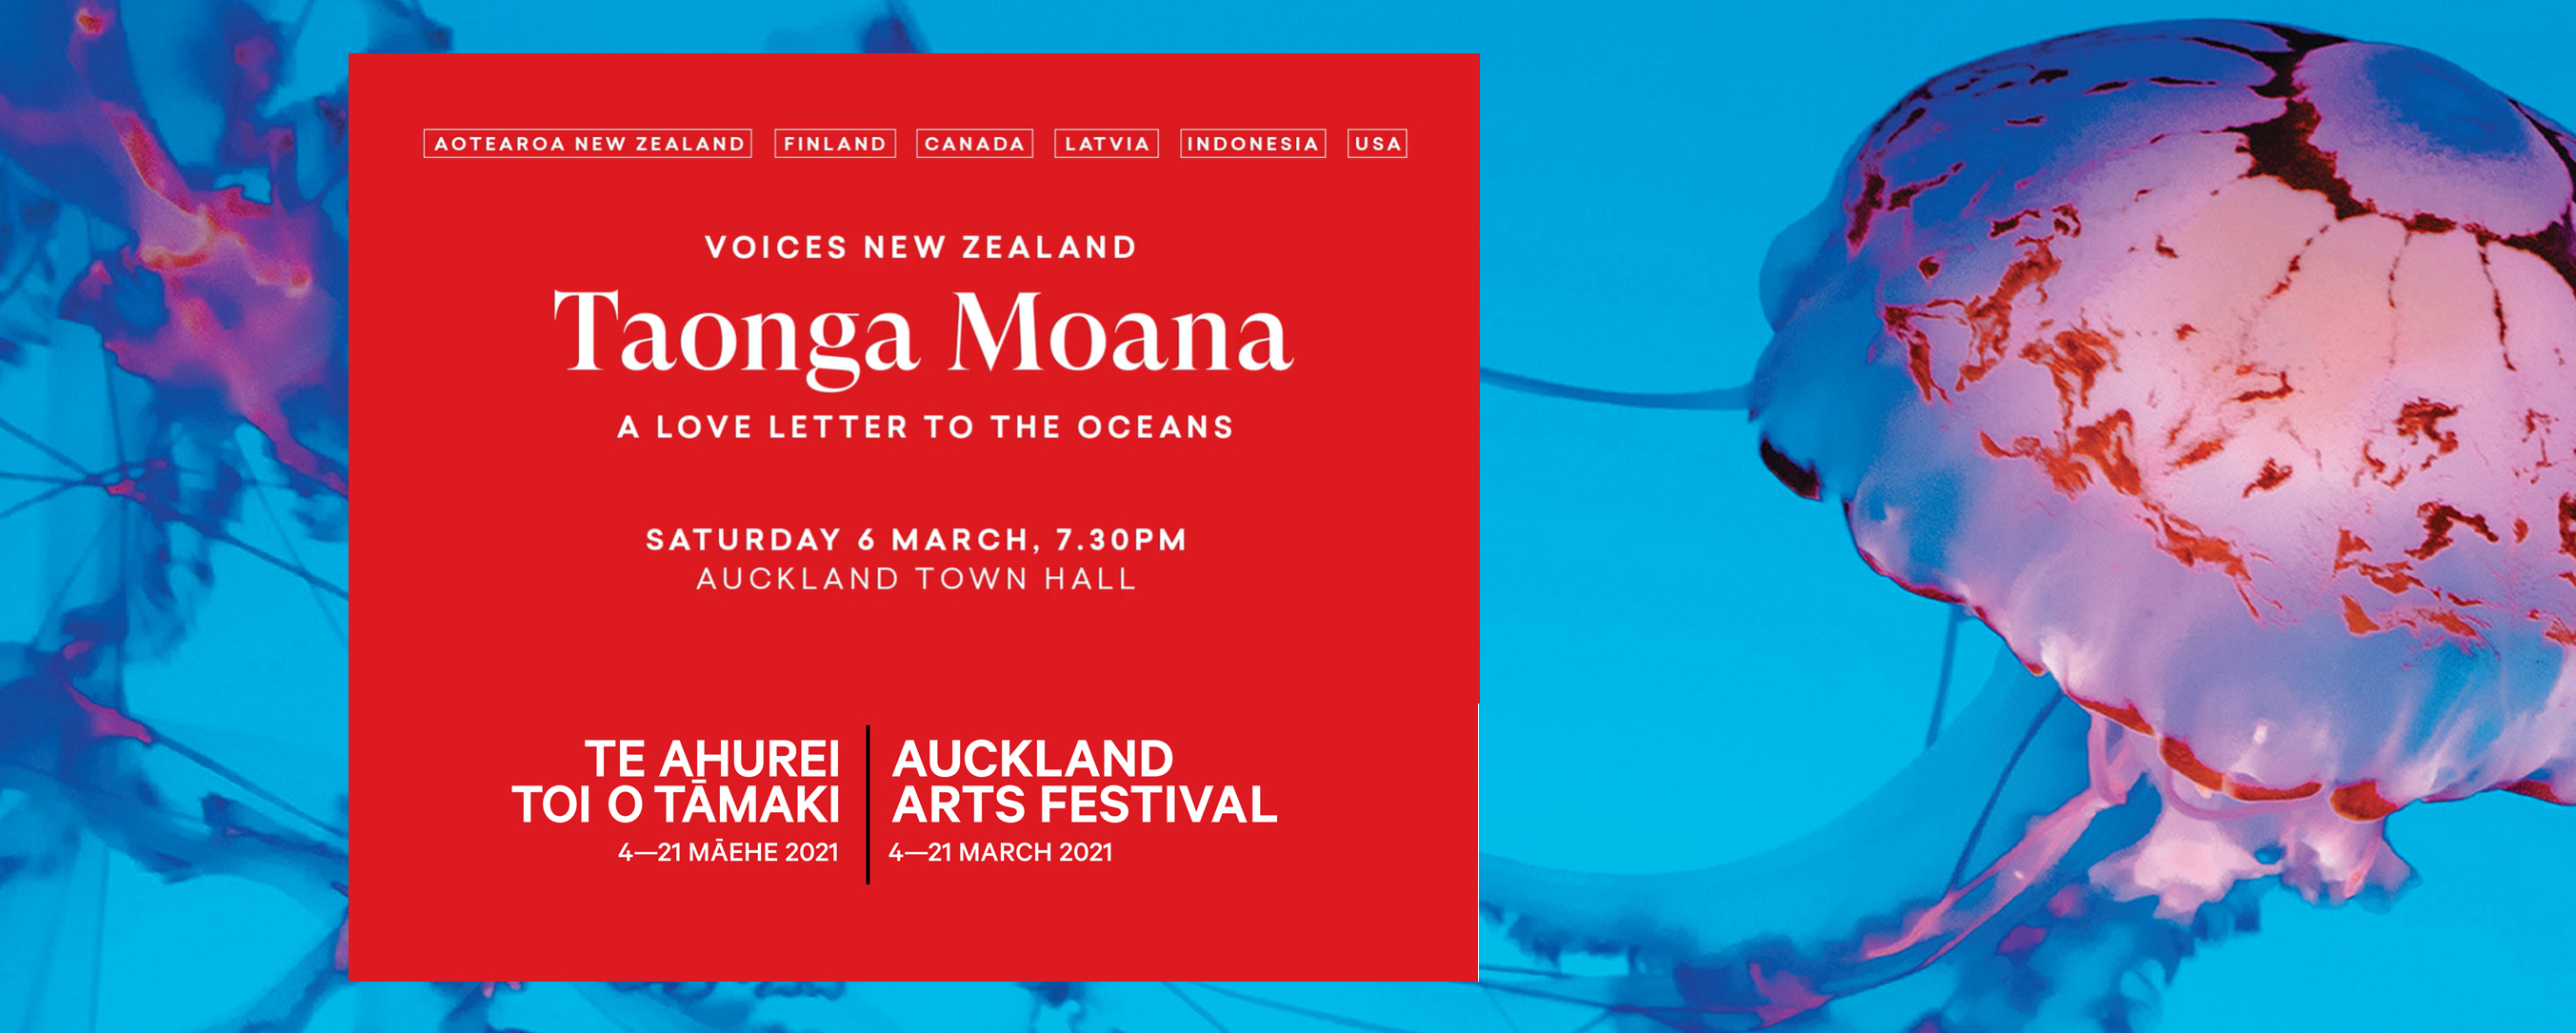 Taonga-Moana_HERO_Voices-NZ-Website2